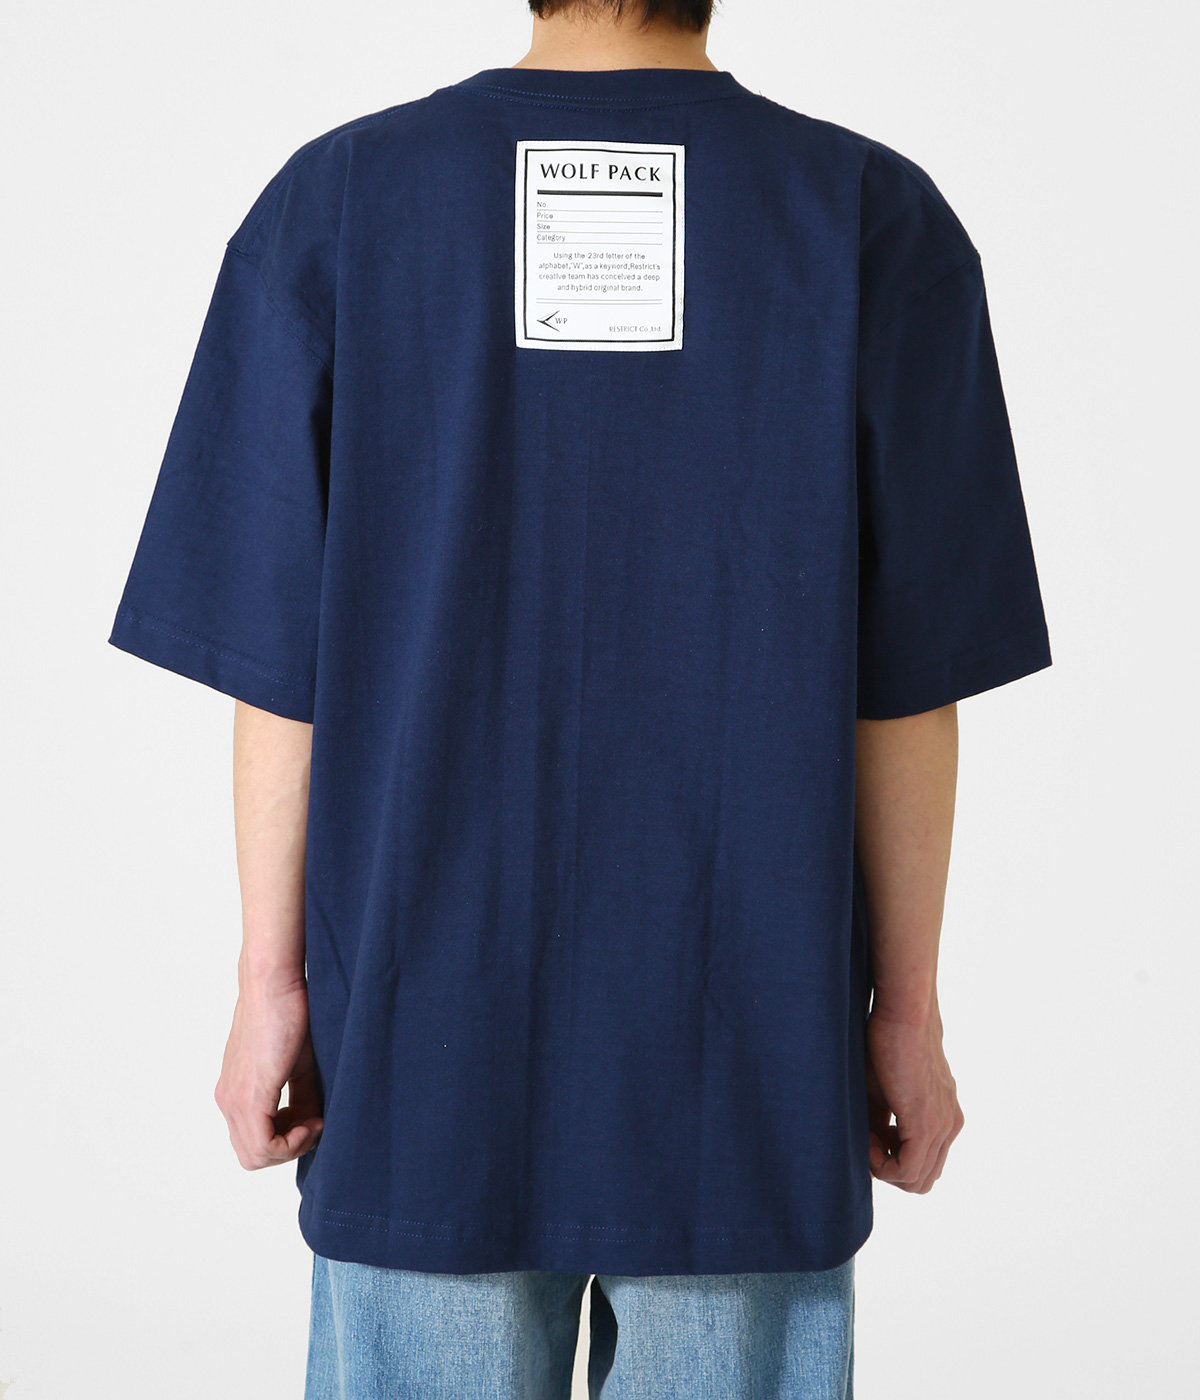 WP×CAMBER ROCKSTEADY4 T-SHIRTS